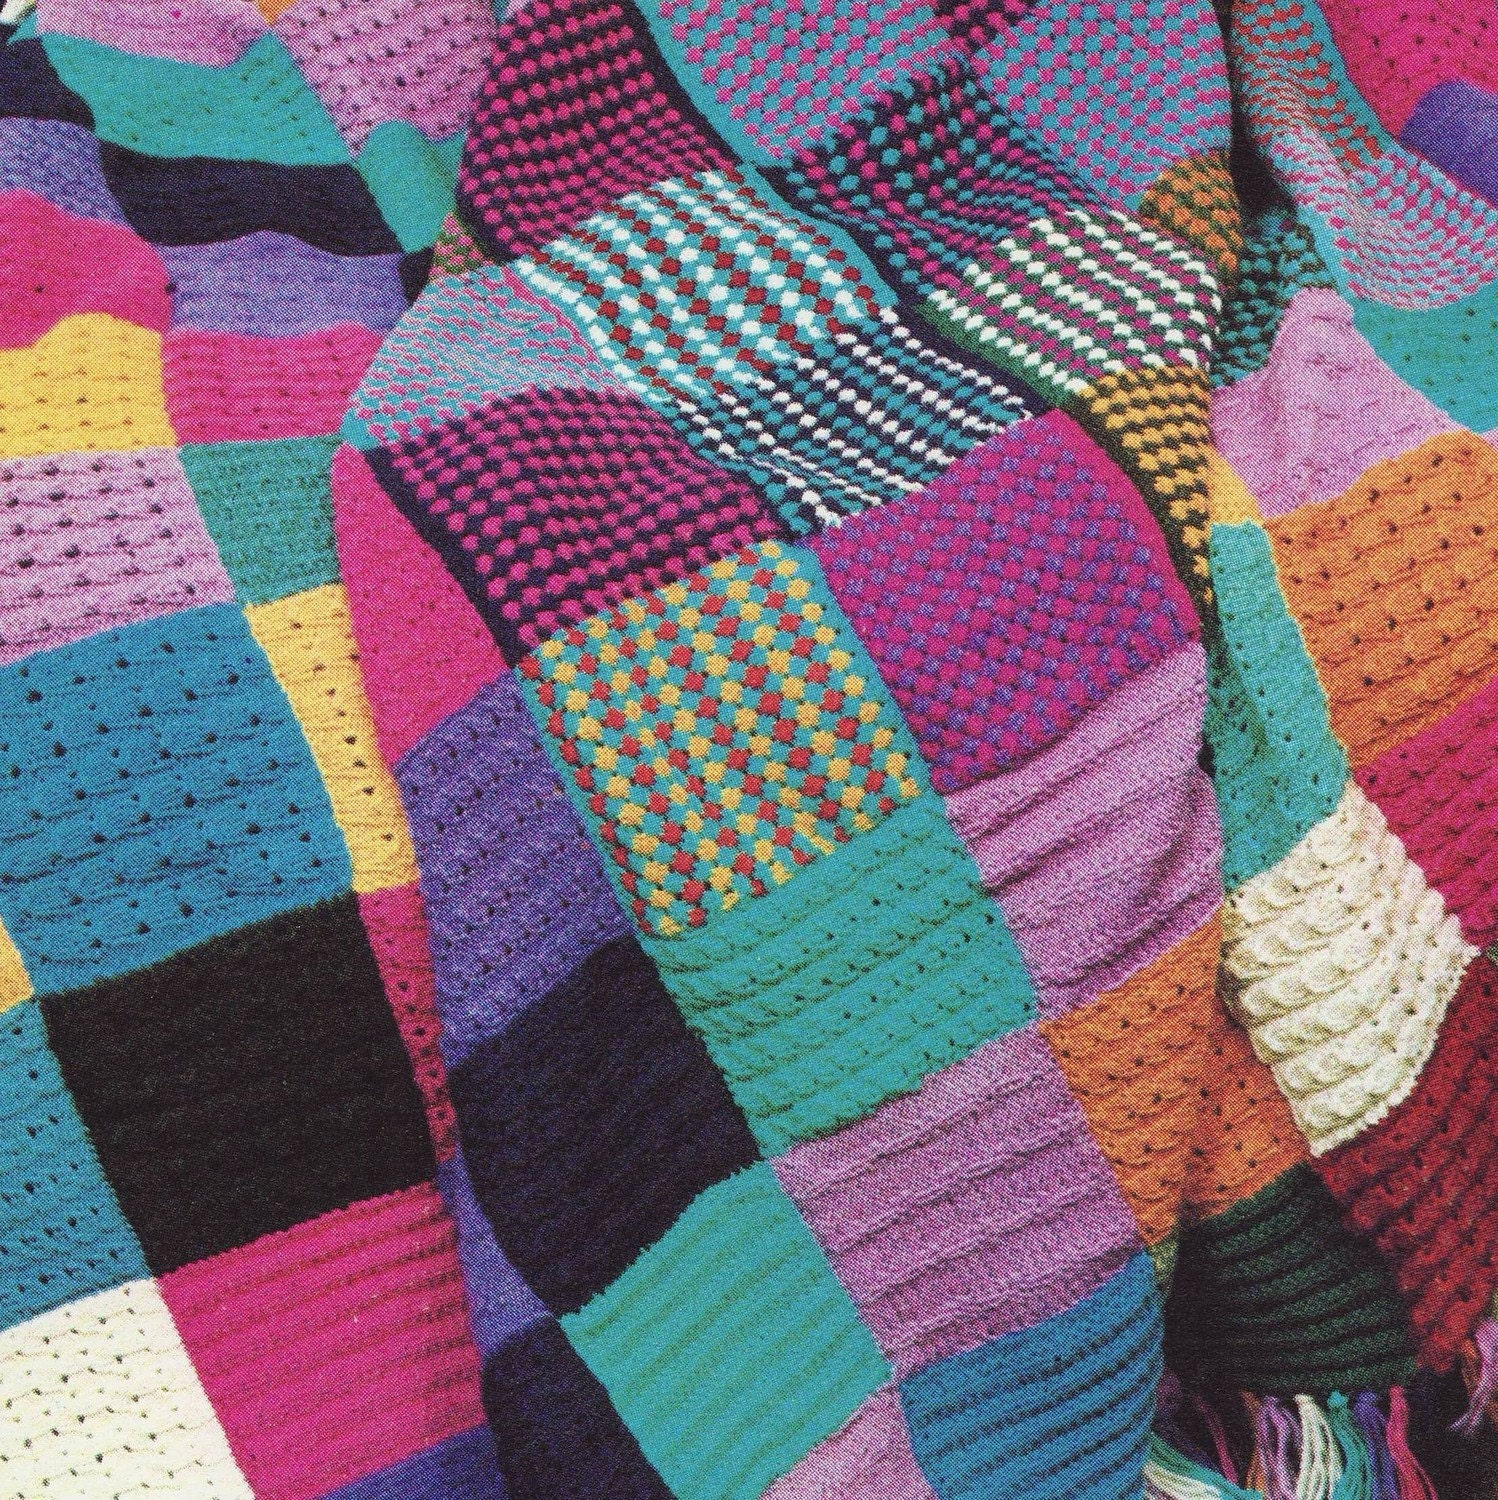 Sale - PDF KNITTING PATTERN for Squares Patchwork Throw Afghan  Vintage